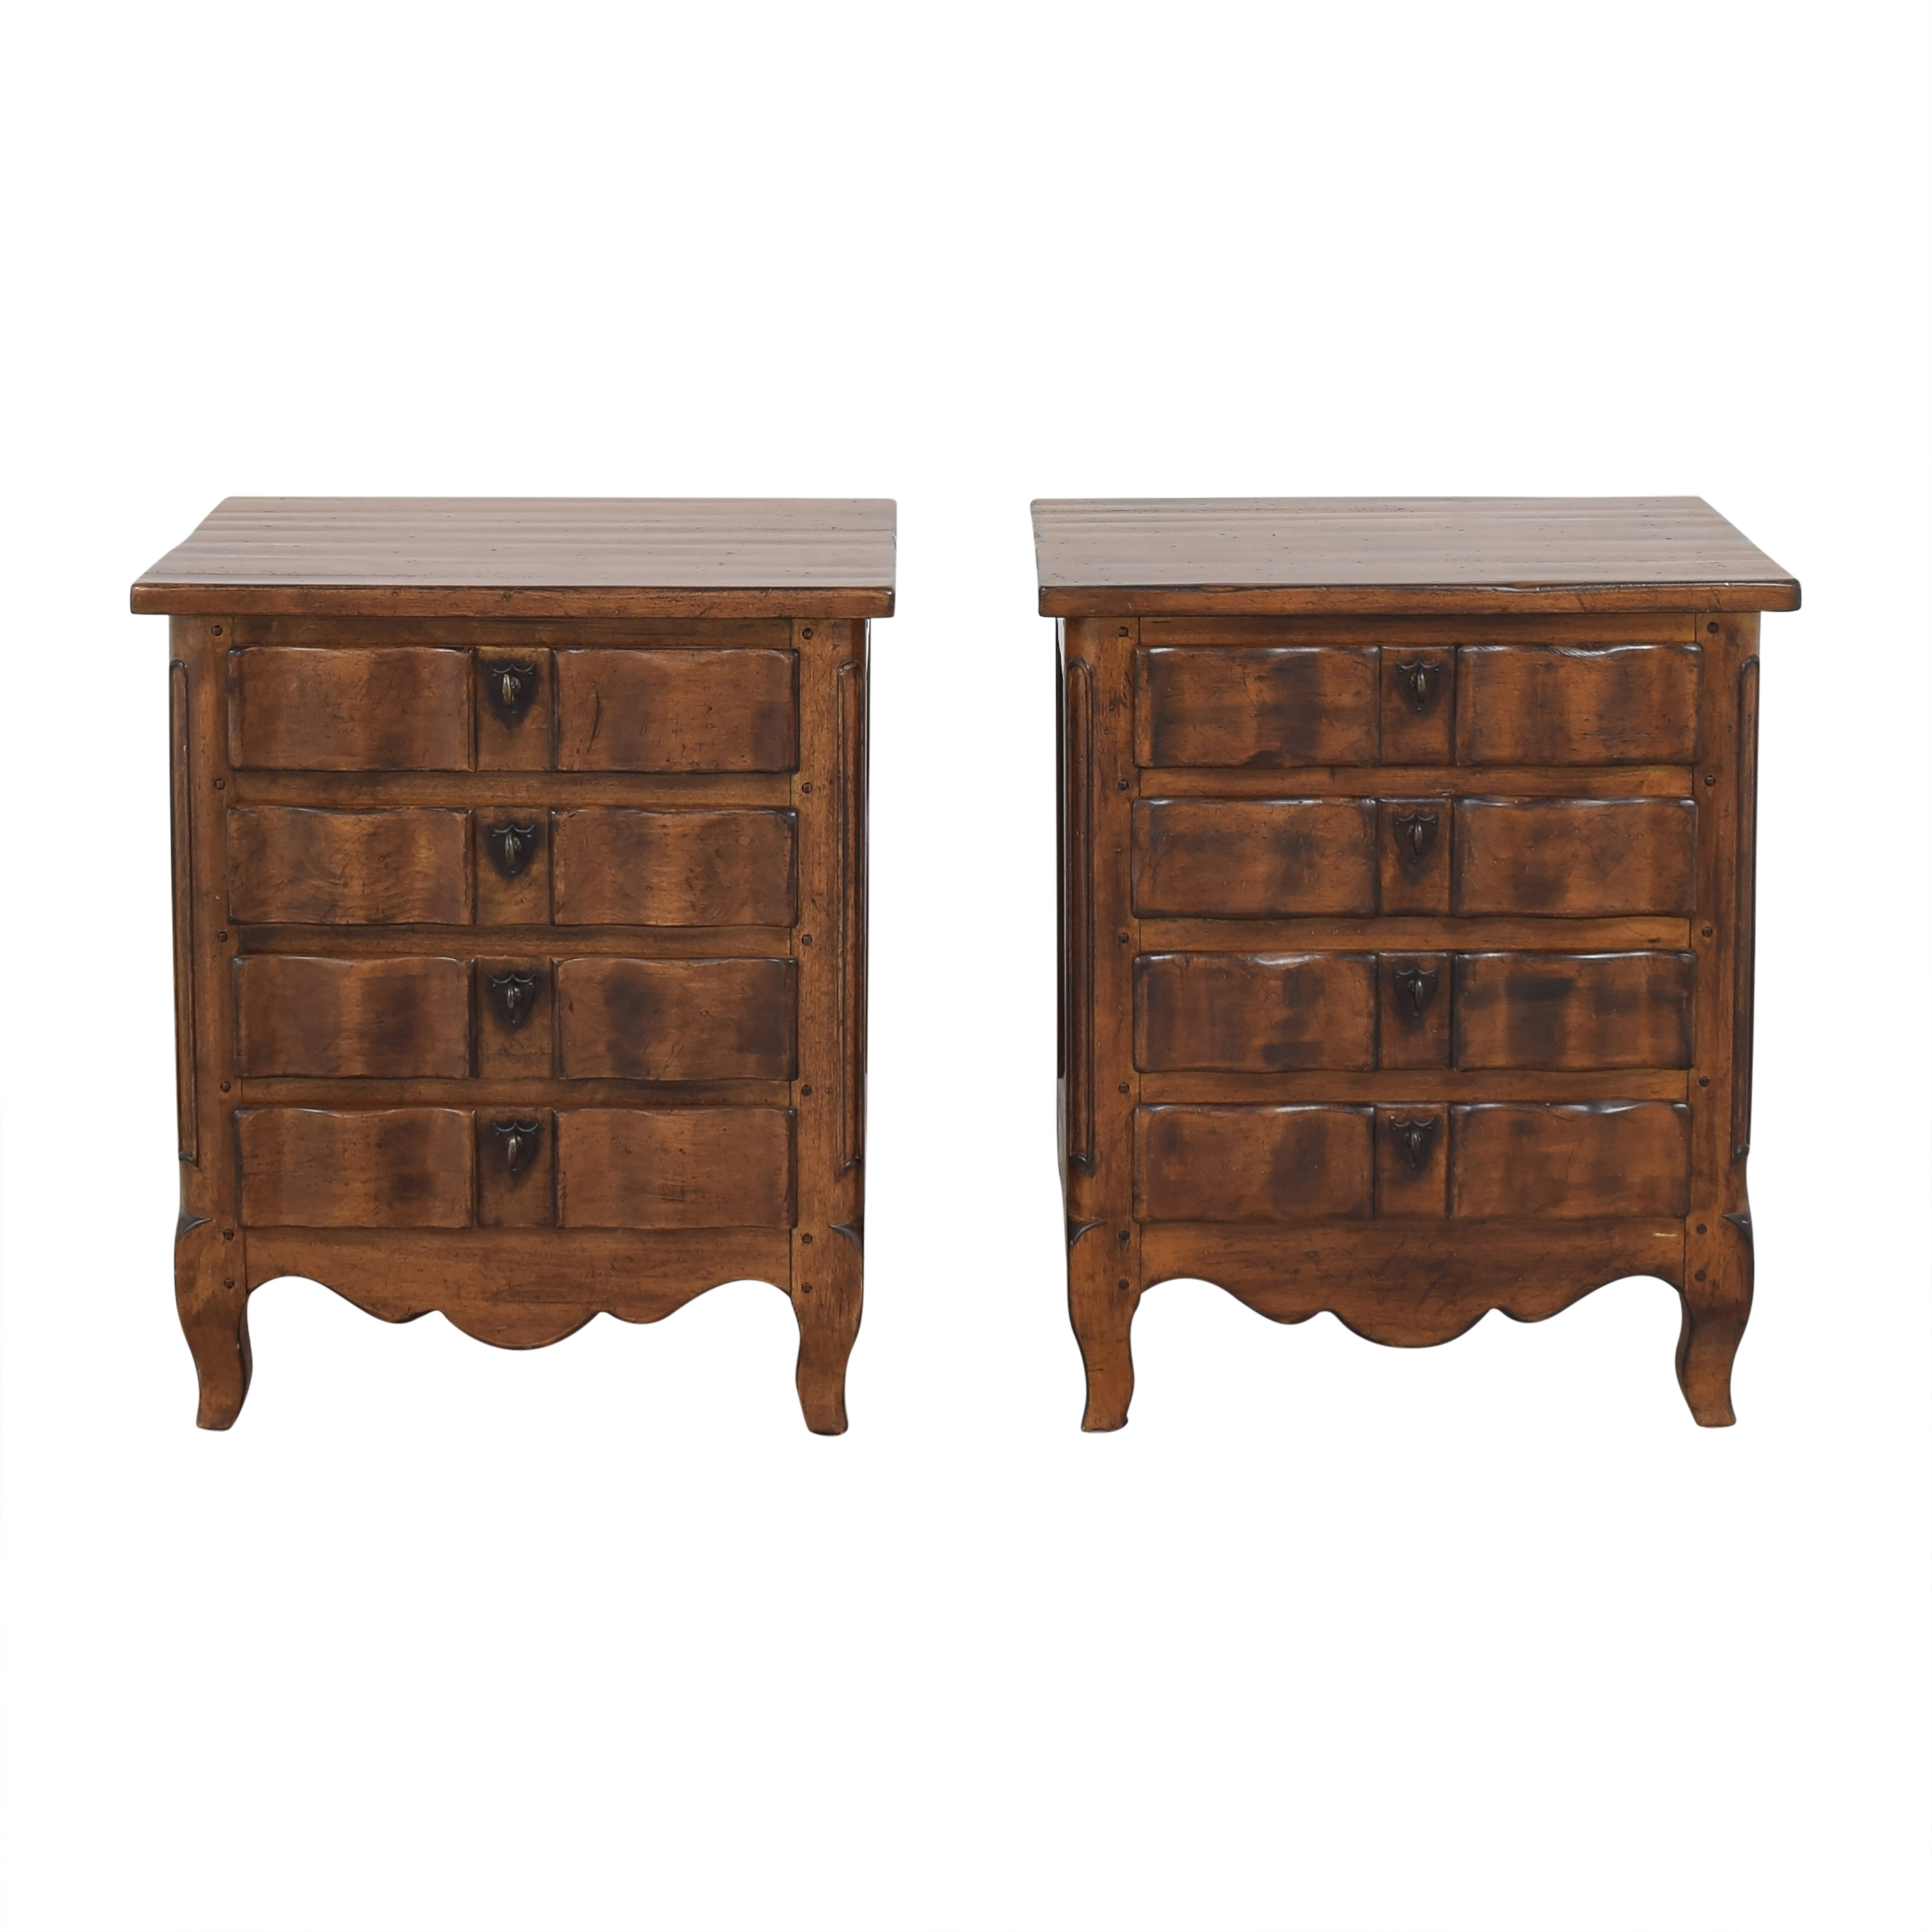 Drexel Heritage Four Drawer Nightstands / End Tables